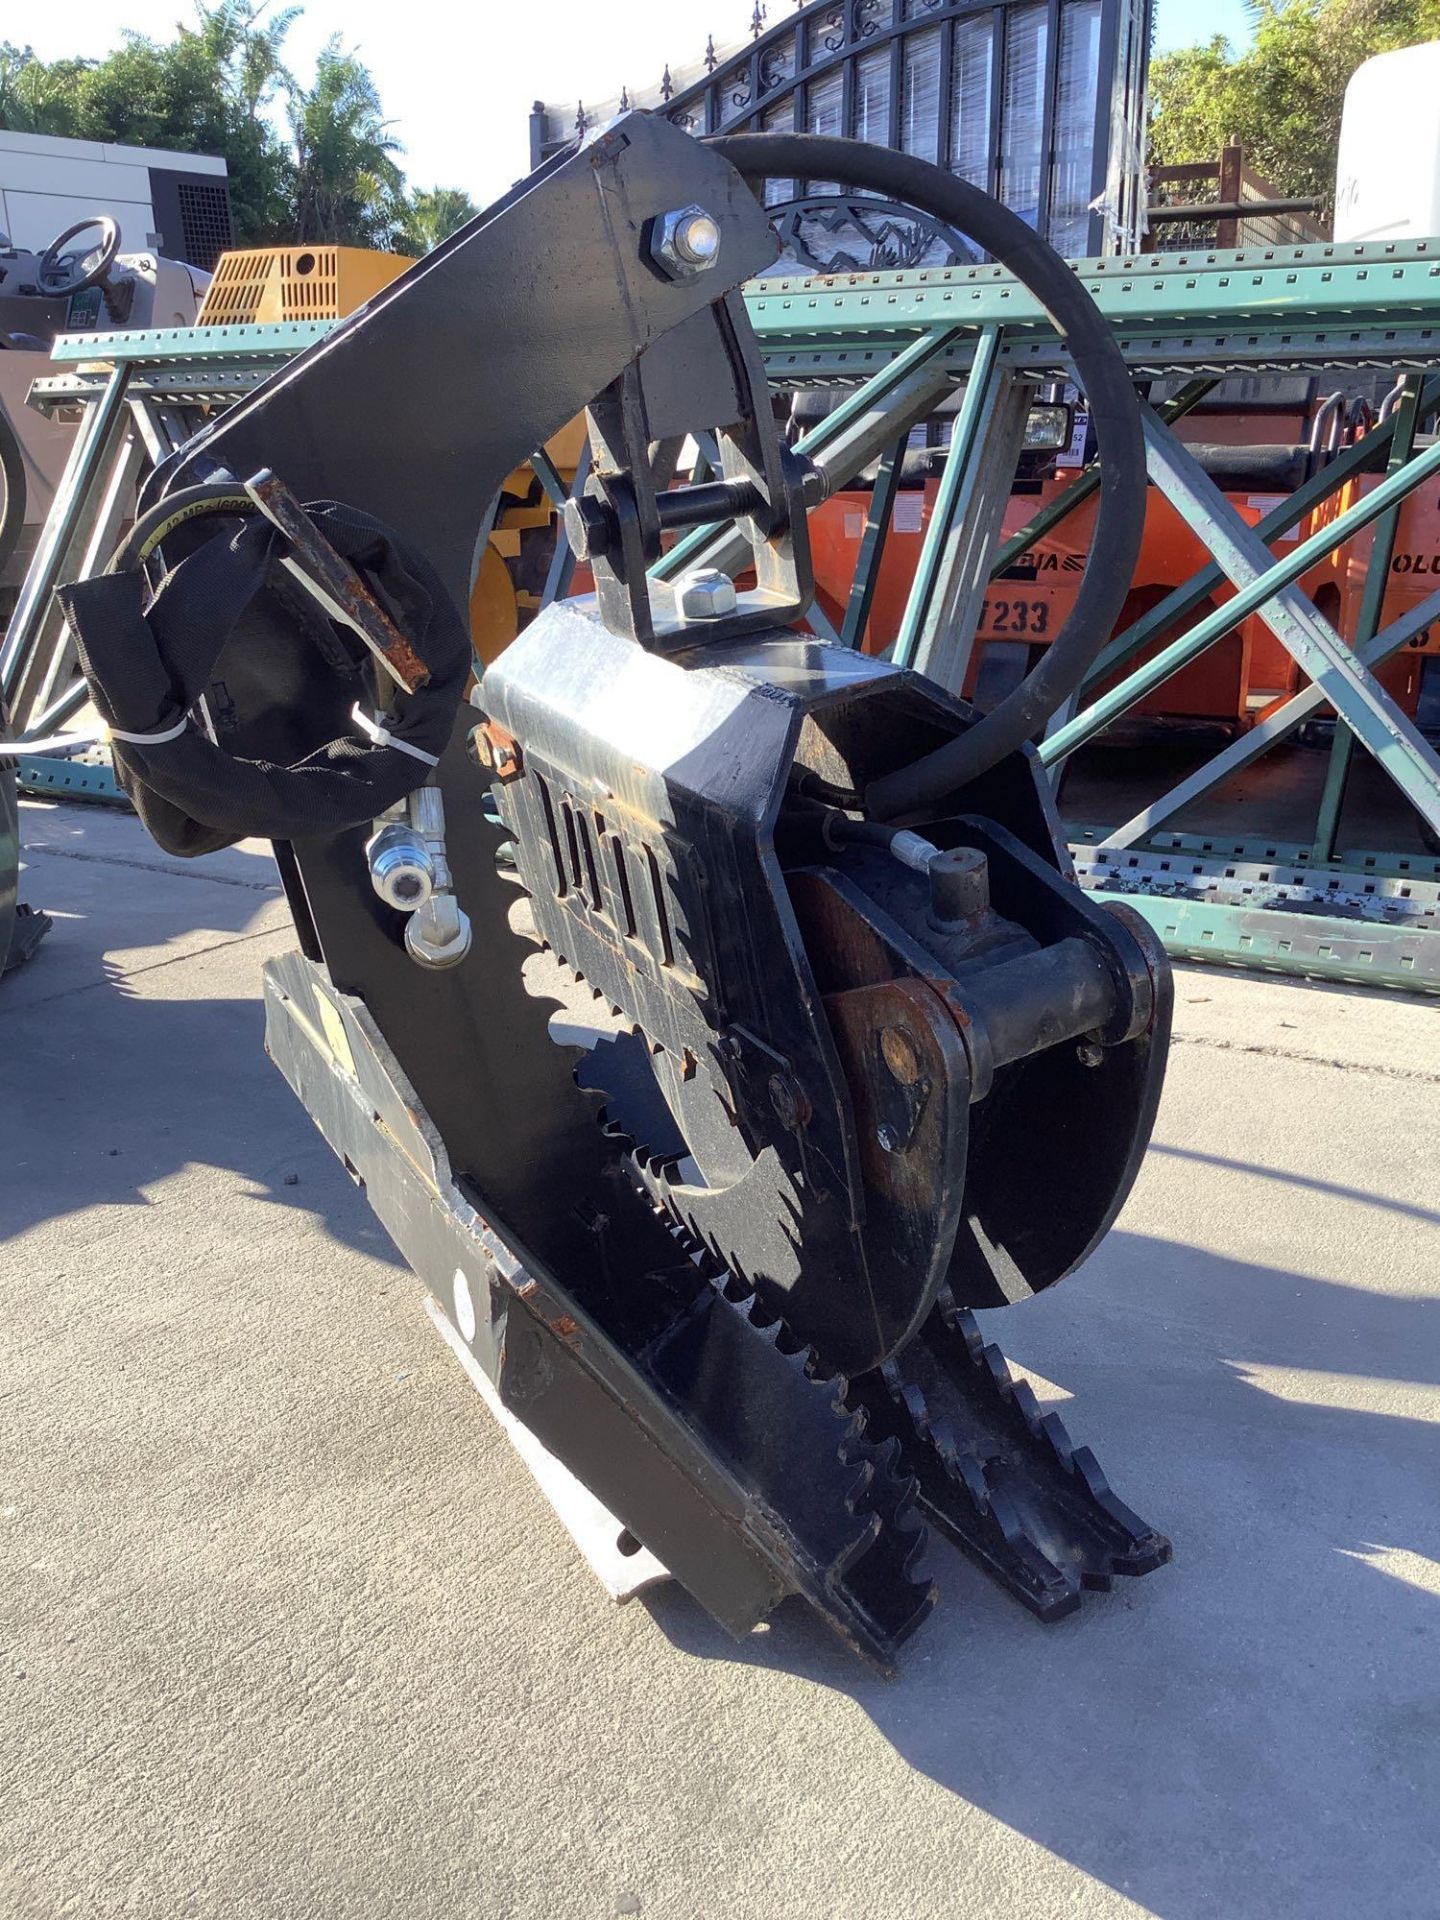 LOG GRAPPLE ATTACHMENT FOR SKID STEER/EQUIPMENT - Image 5 of 8